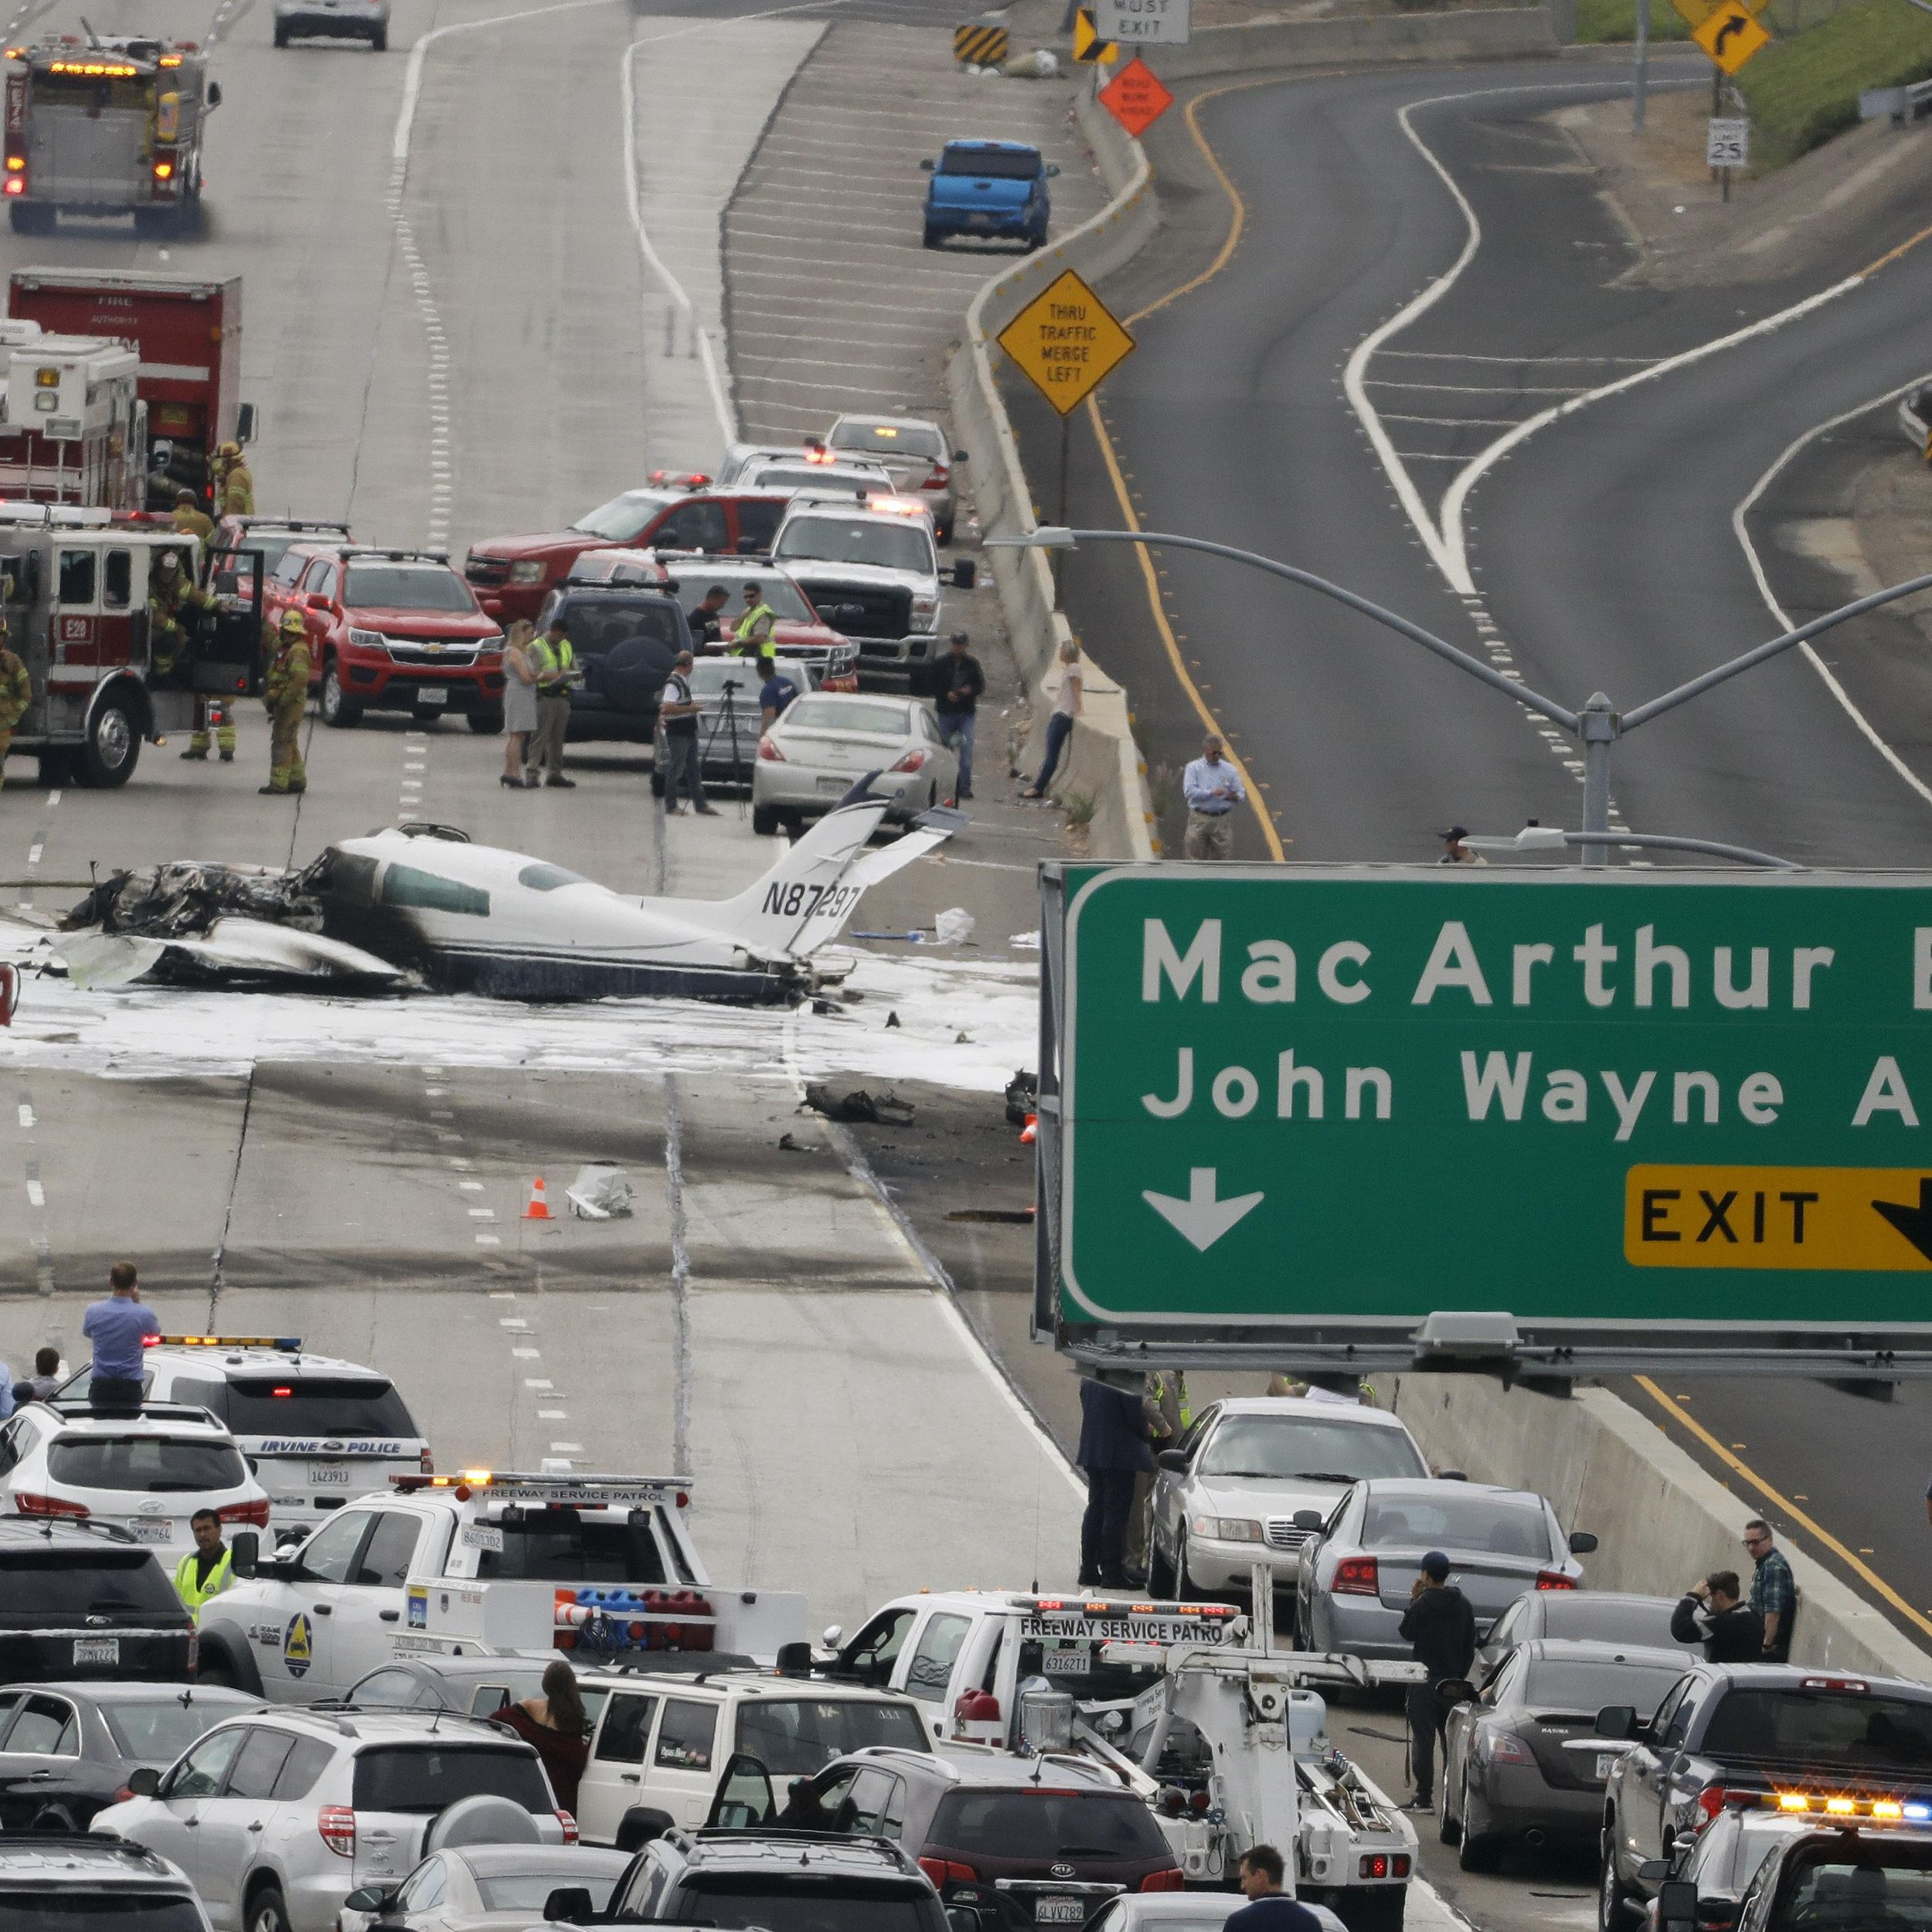 Pilot Says Hey We Got A Mayday Then Crashes On Freeway The Spokesman Review